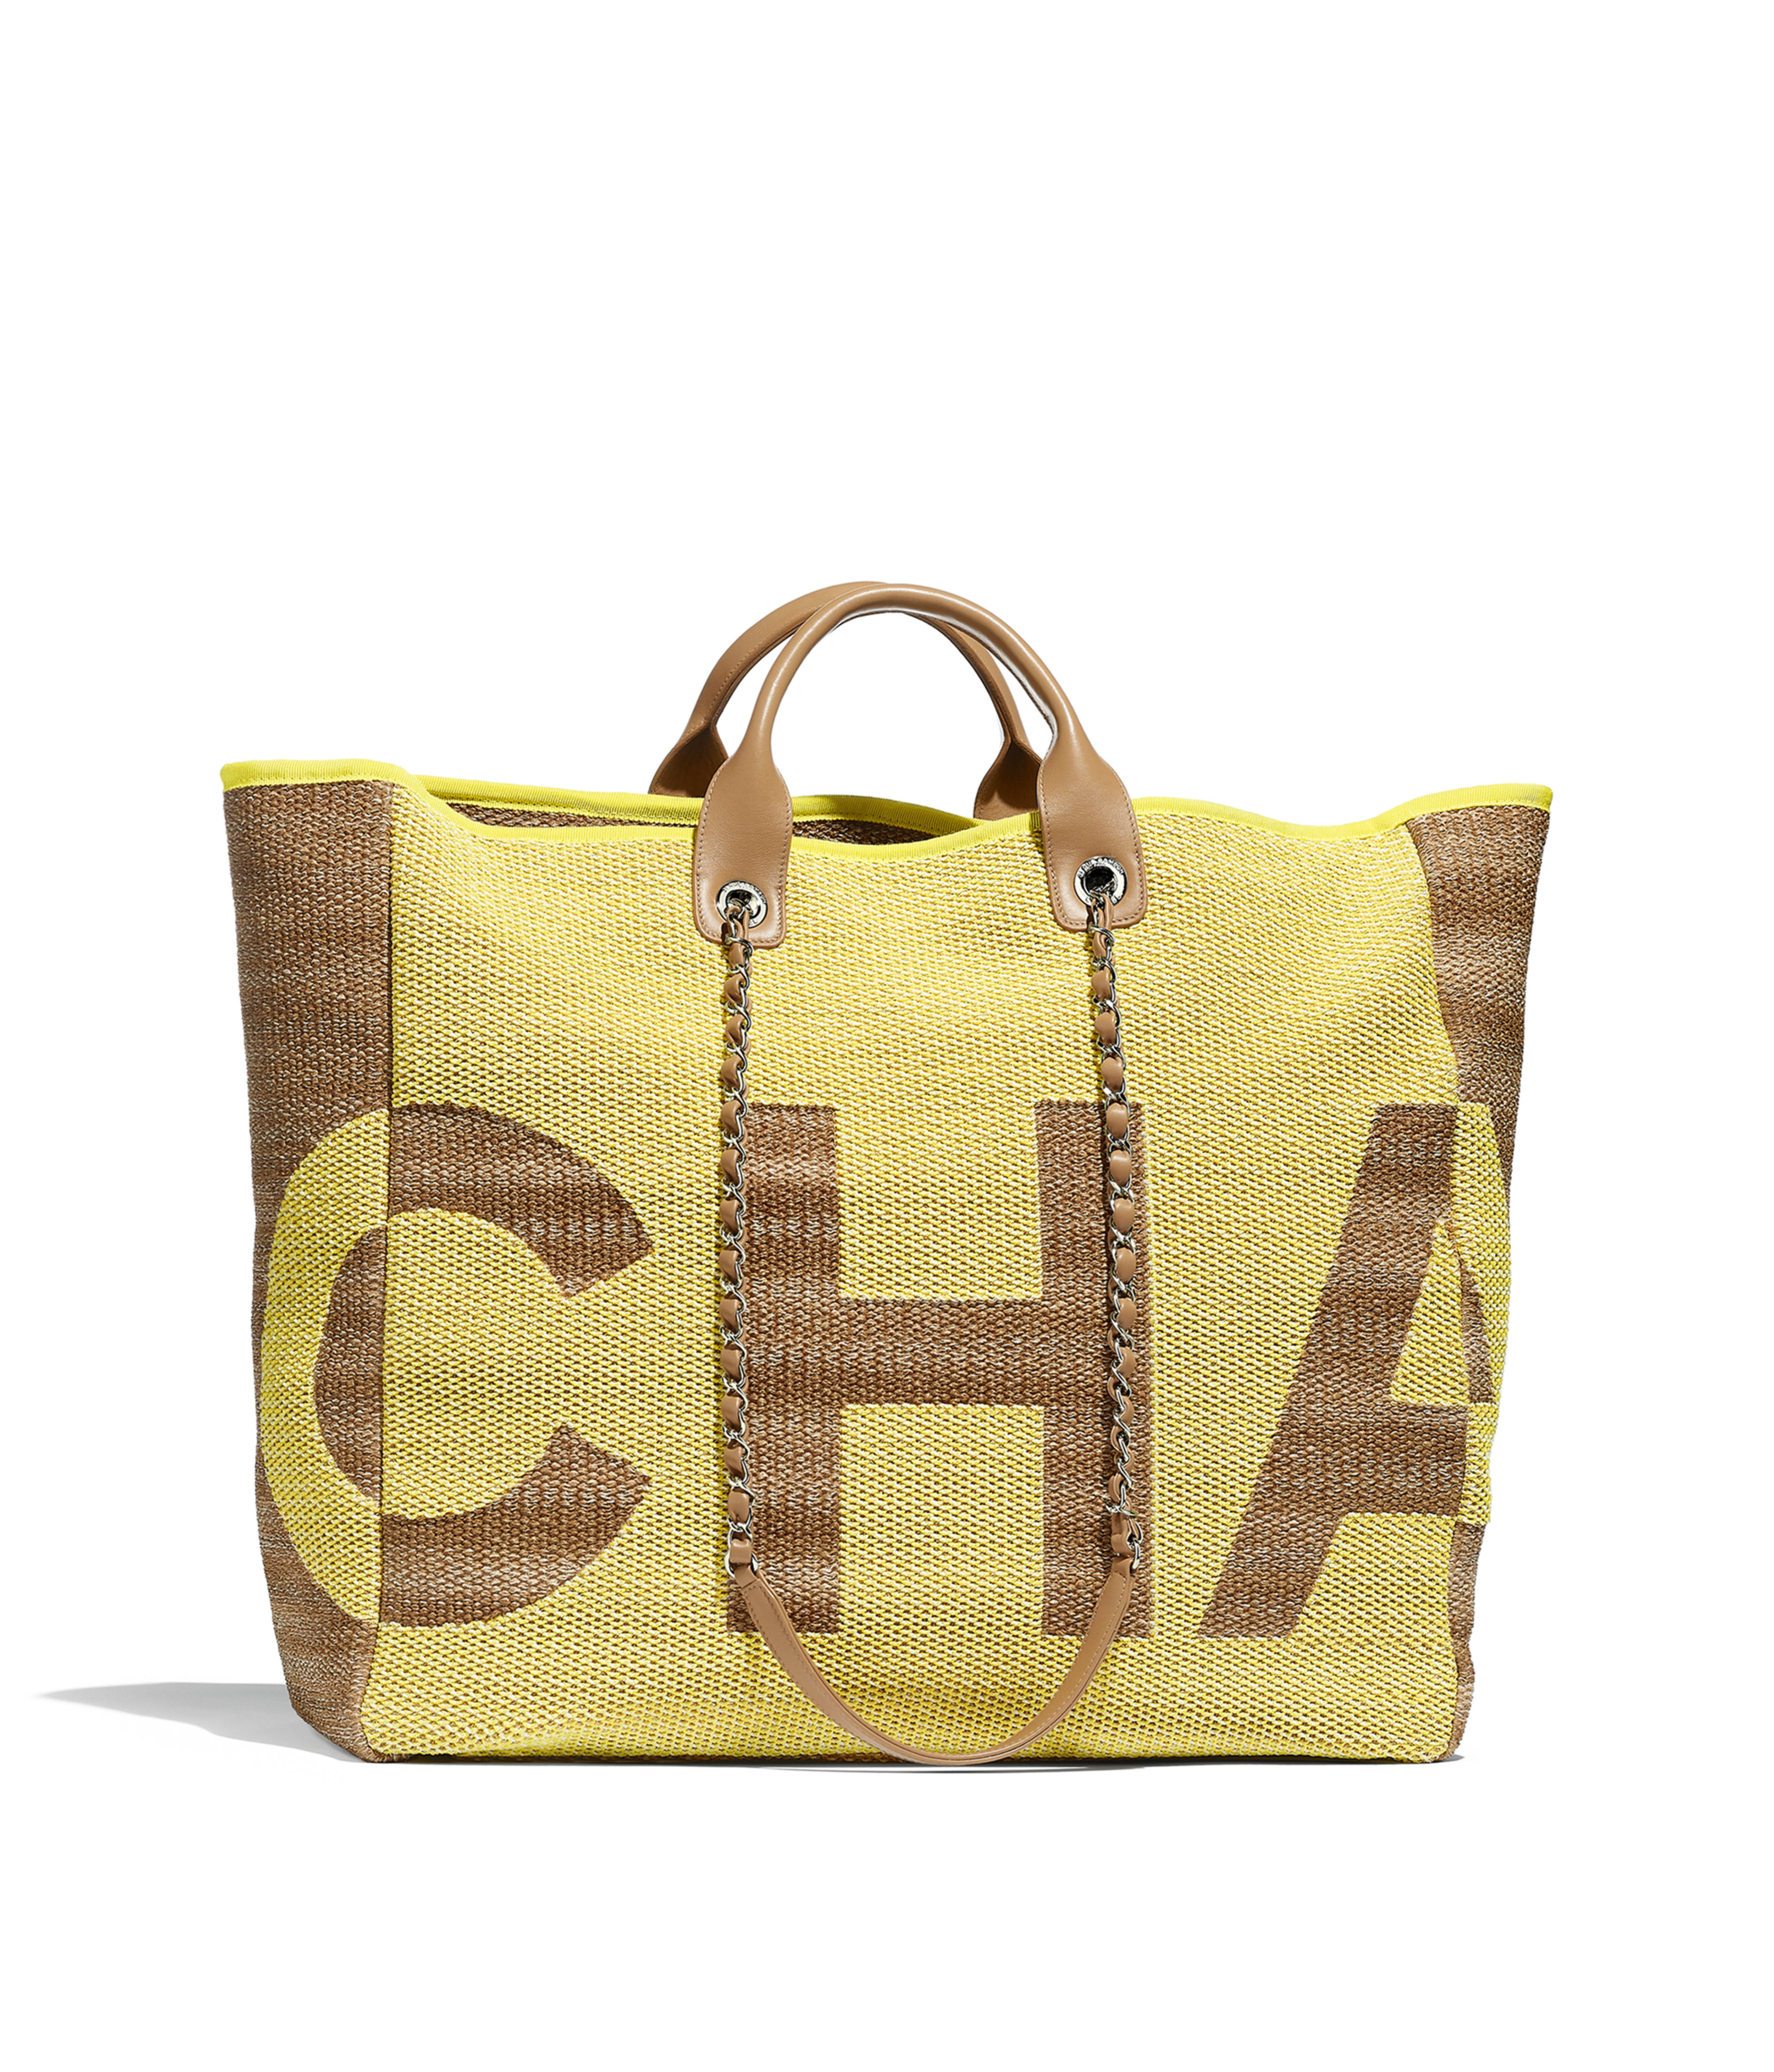 b403478b3f40 Large Shopping Bag Mixed Fibers, Viscose, Calfskin & Silver-Tone Metal,  Yellow & Dark Beige Ref. A57162B00380N4525